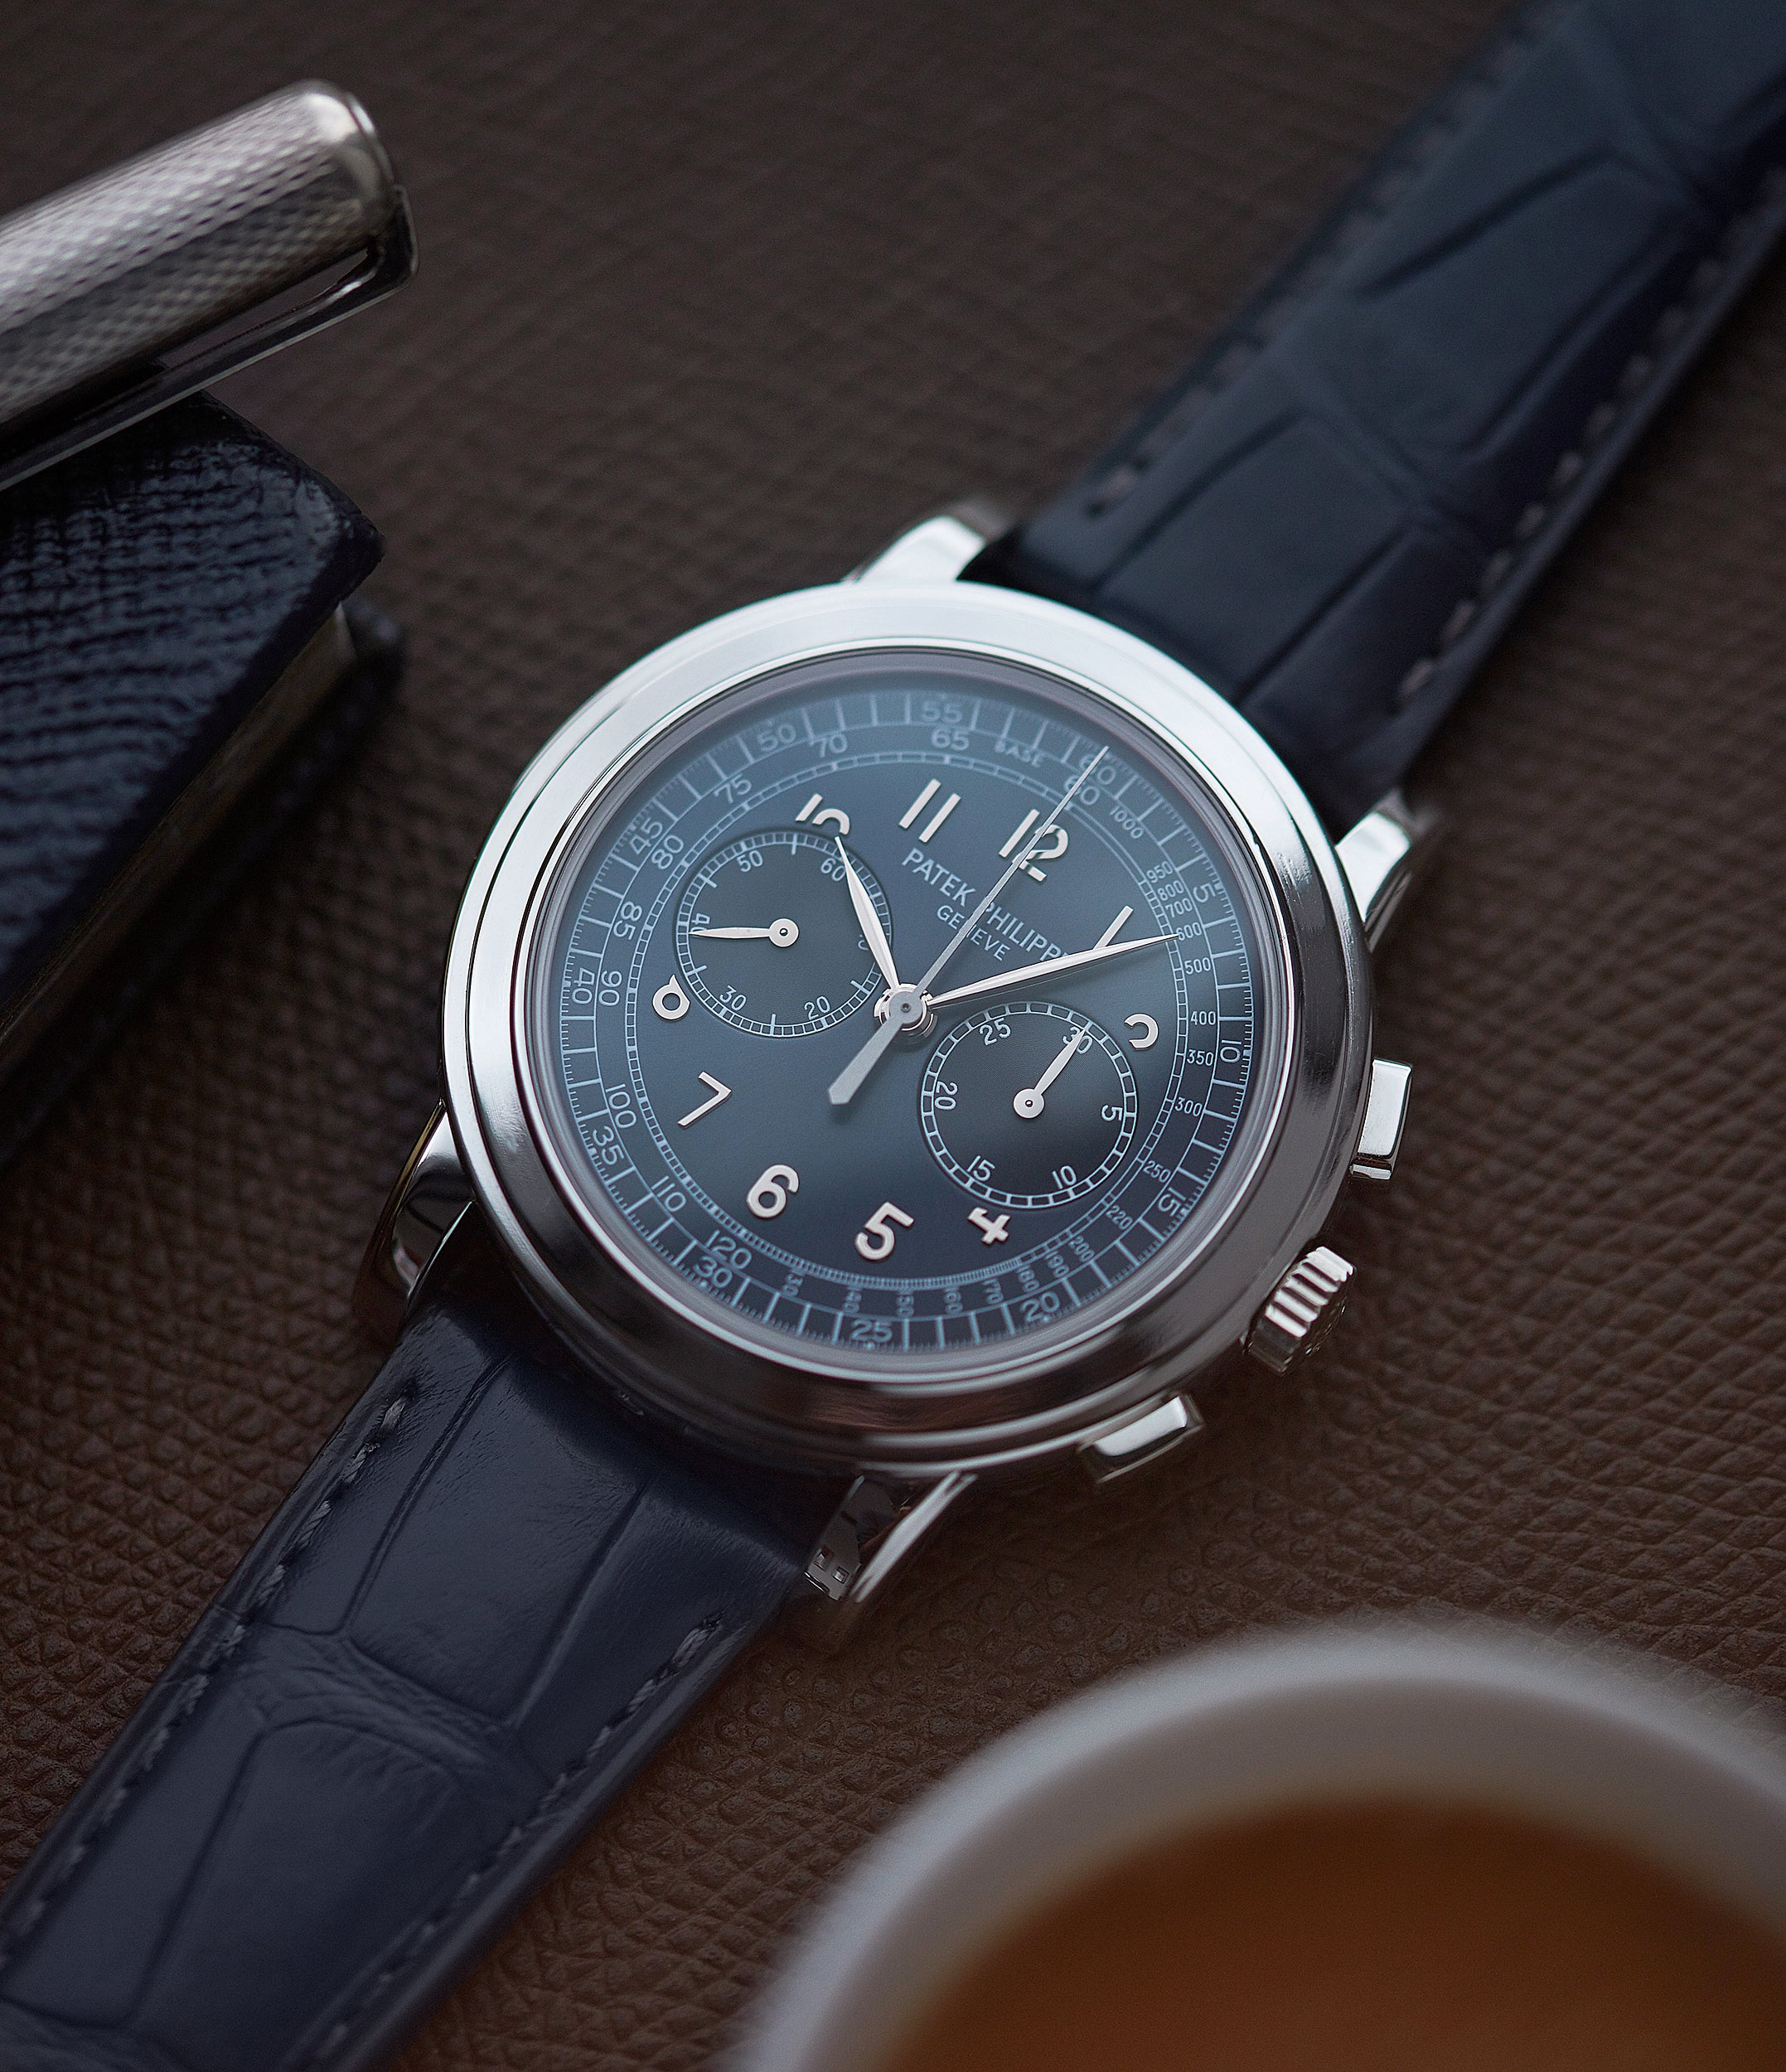 Patek Philippe 5070P Chronograph blue dial dress watch for sale online at A Collected Man London UK specialist of rare watches